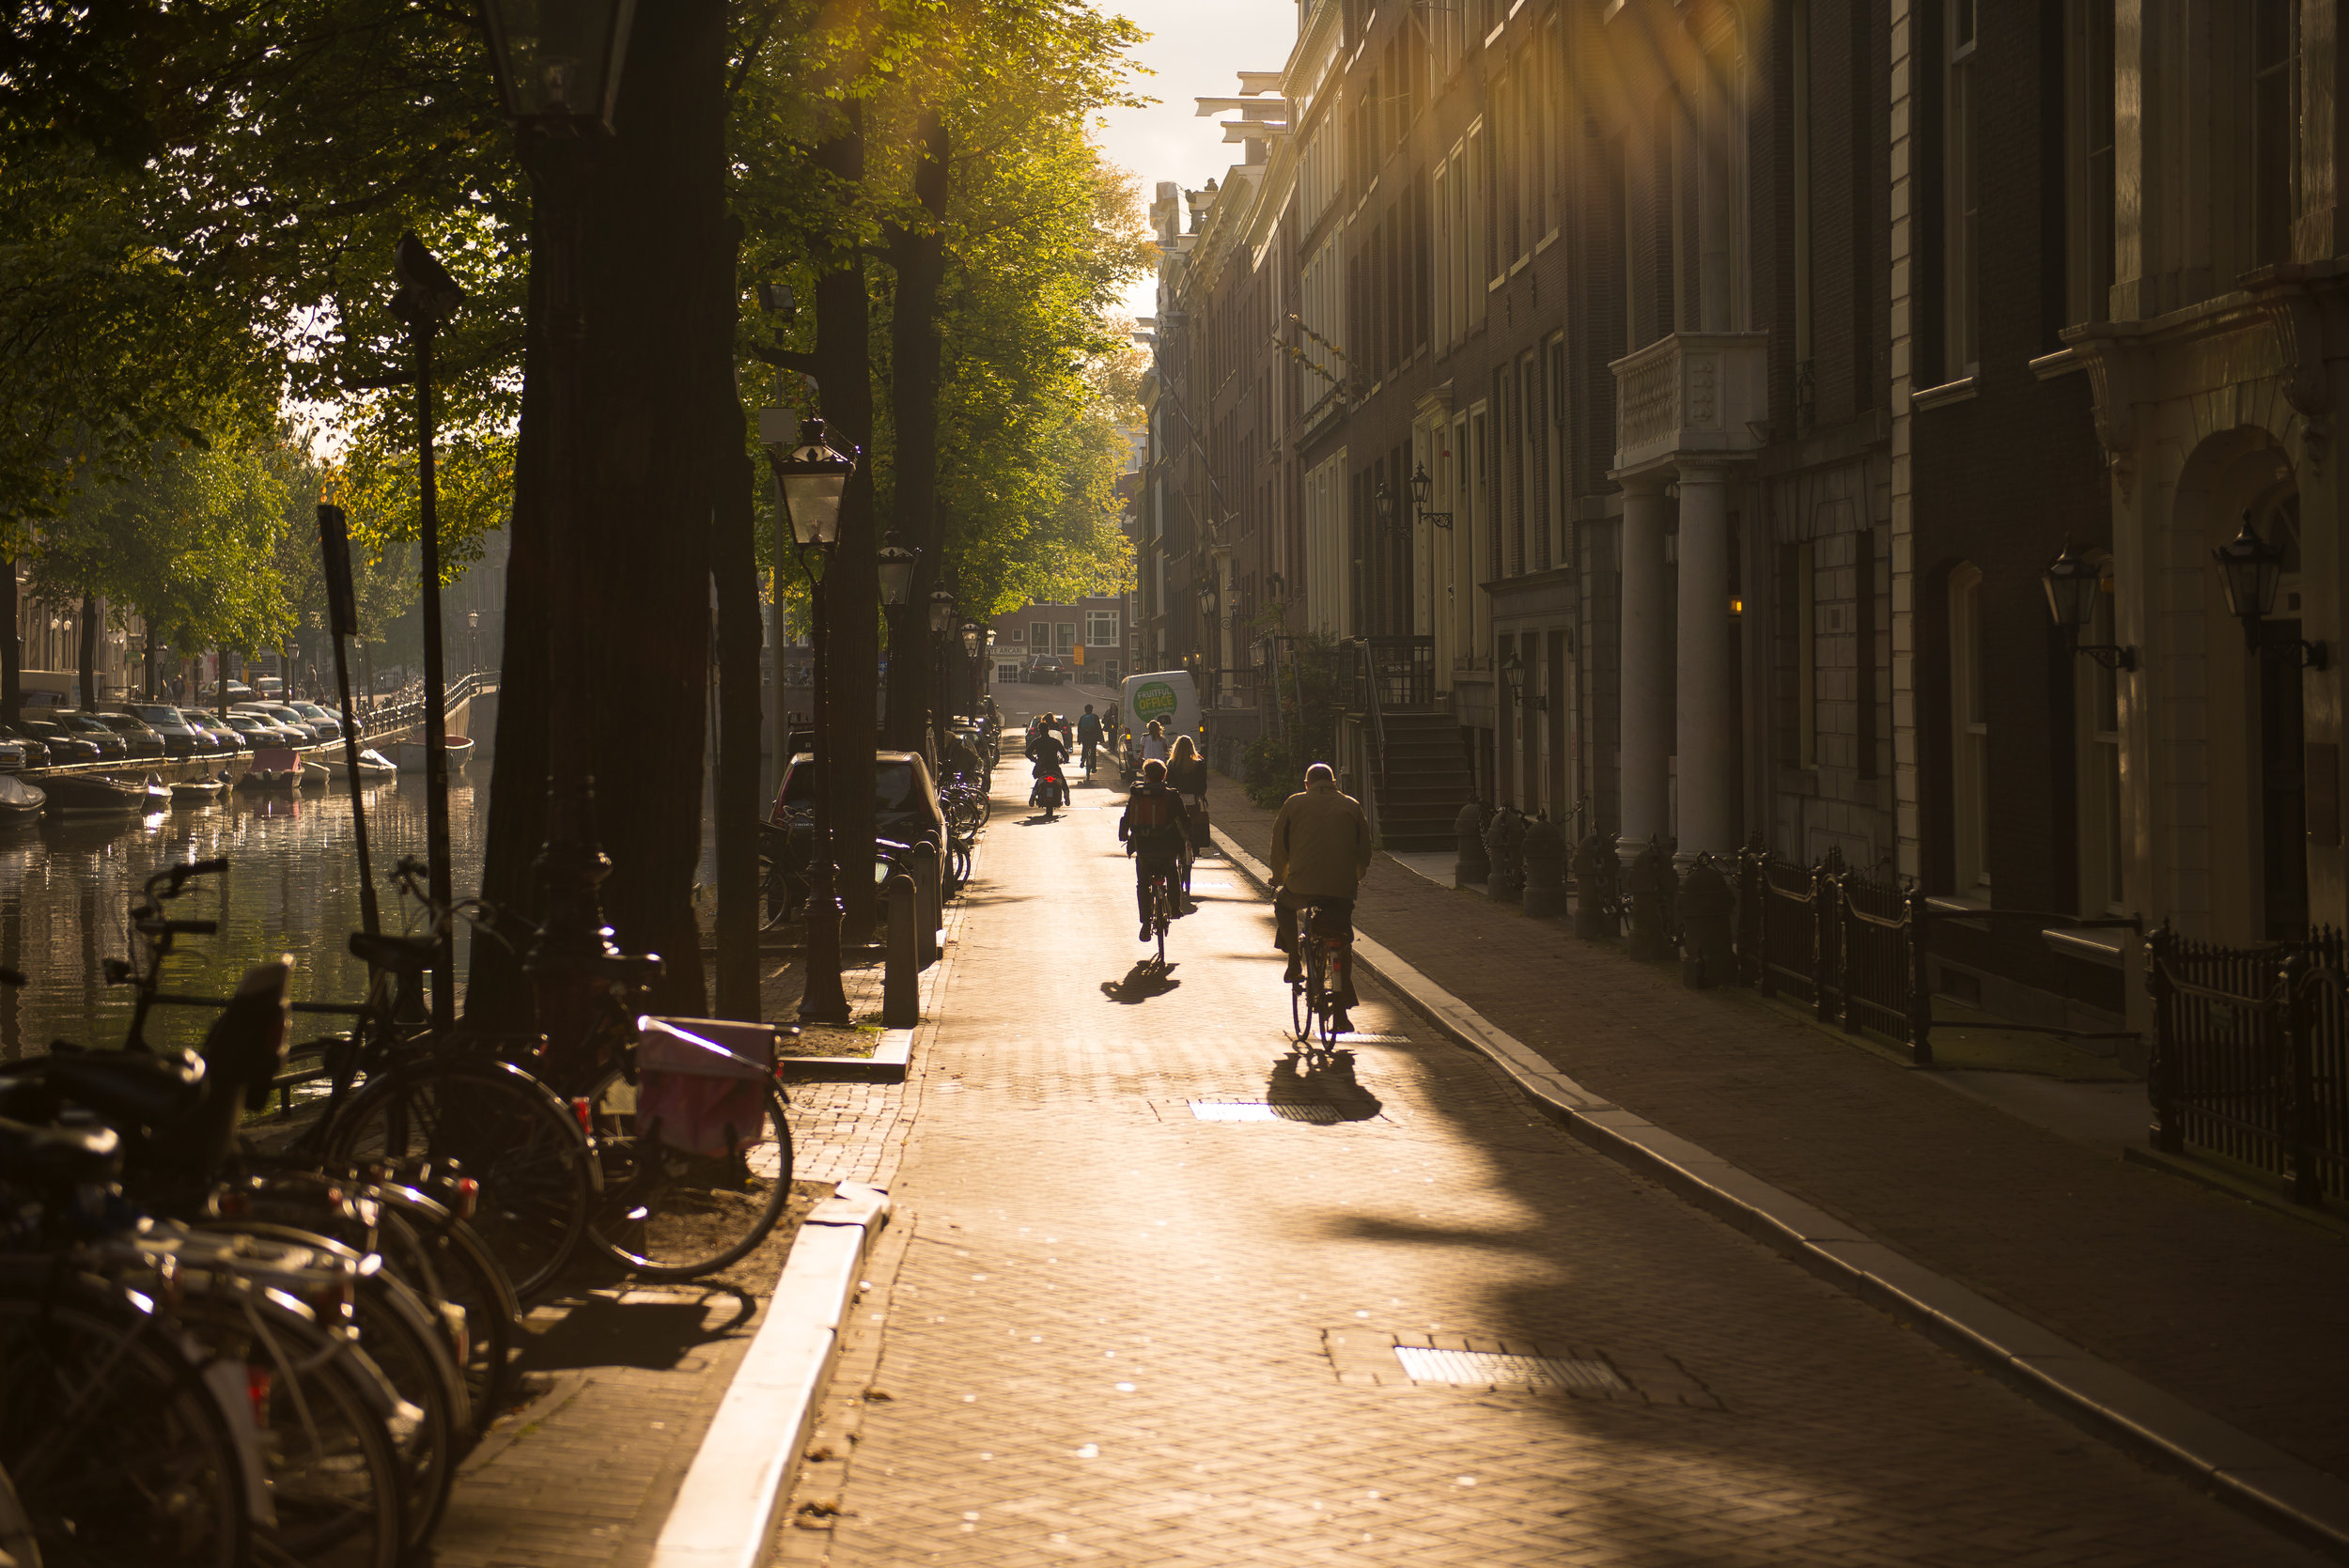 Streets of amsterdam photos